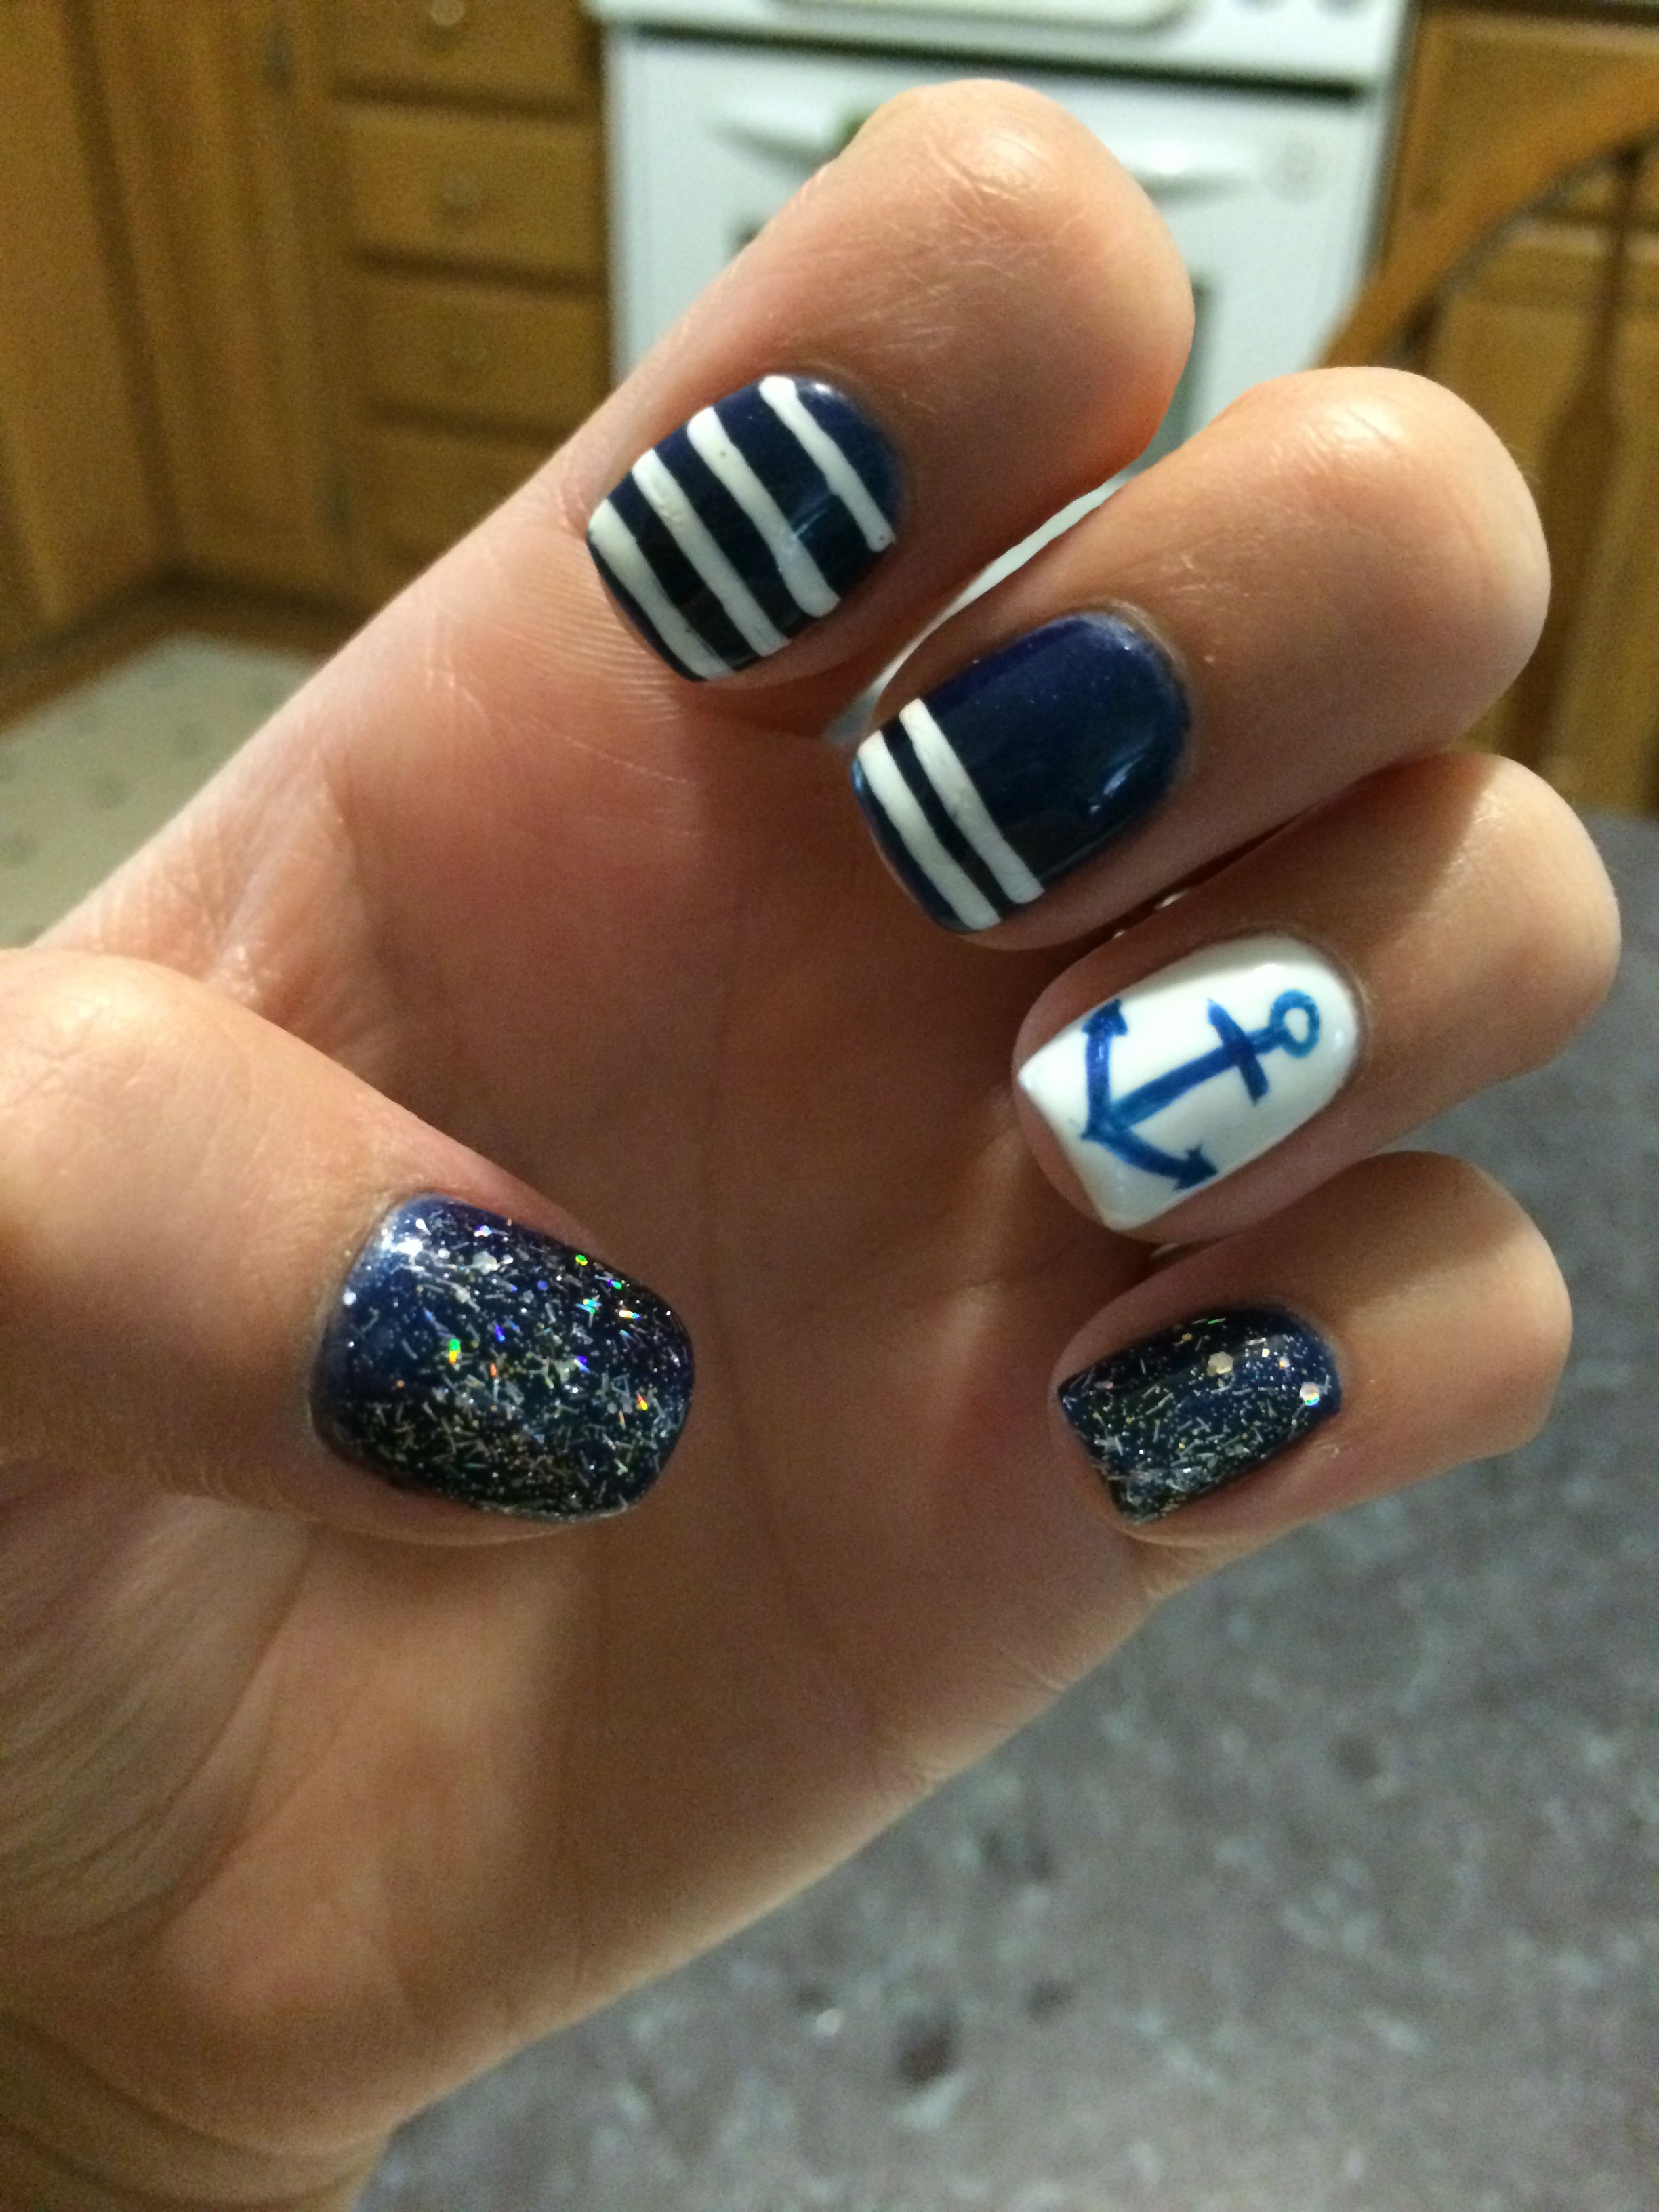 Copied from Pinterest onto my own nails :)